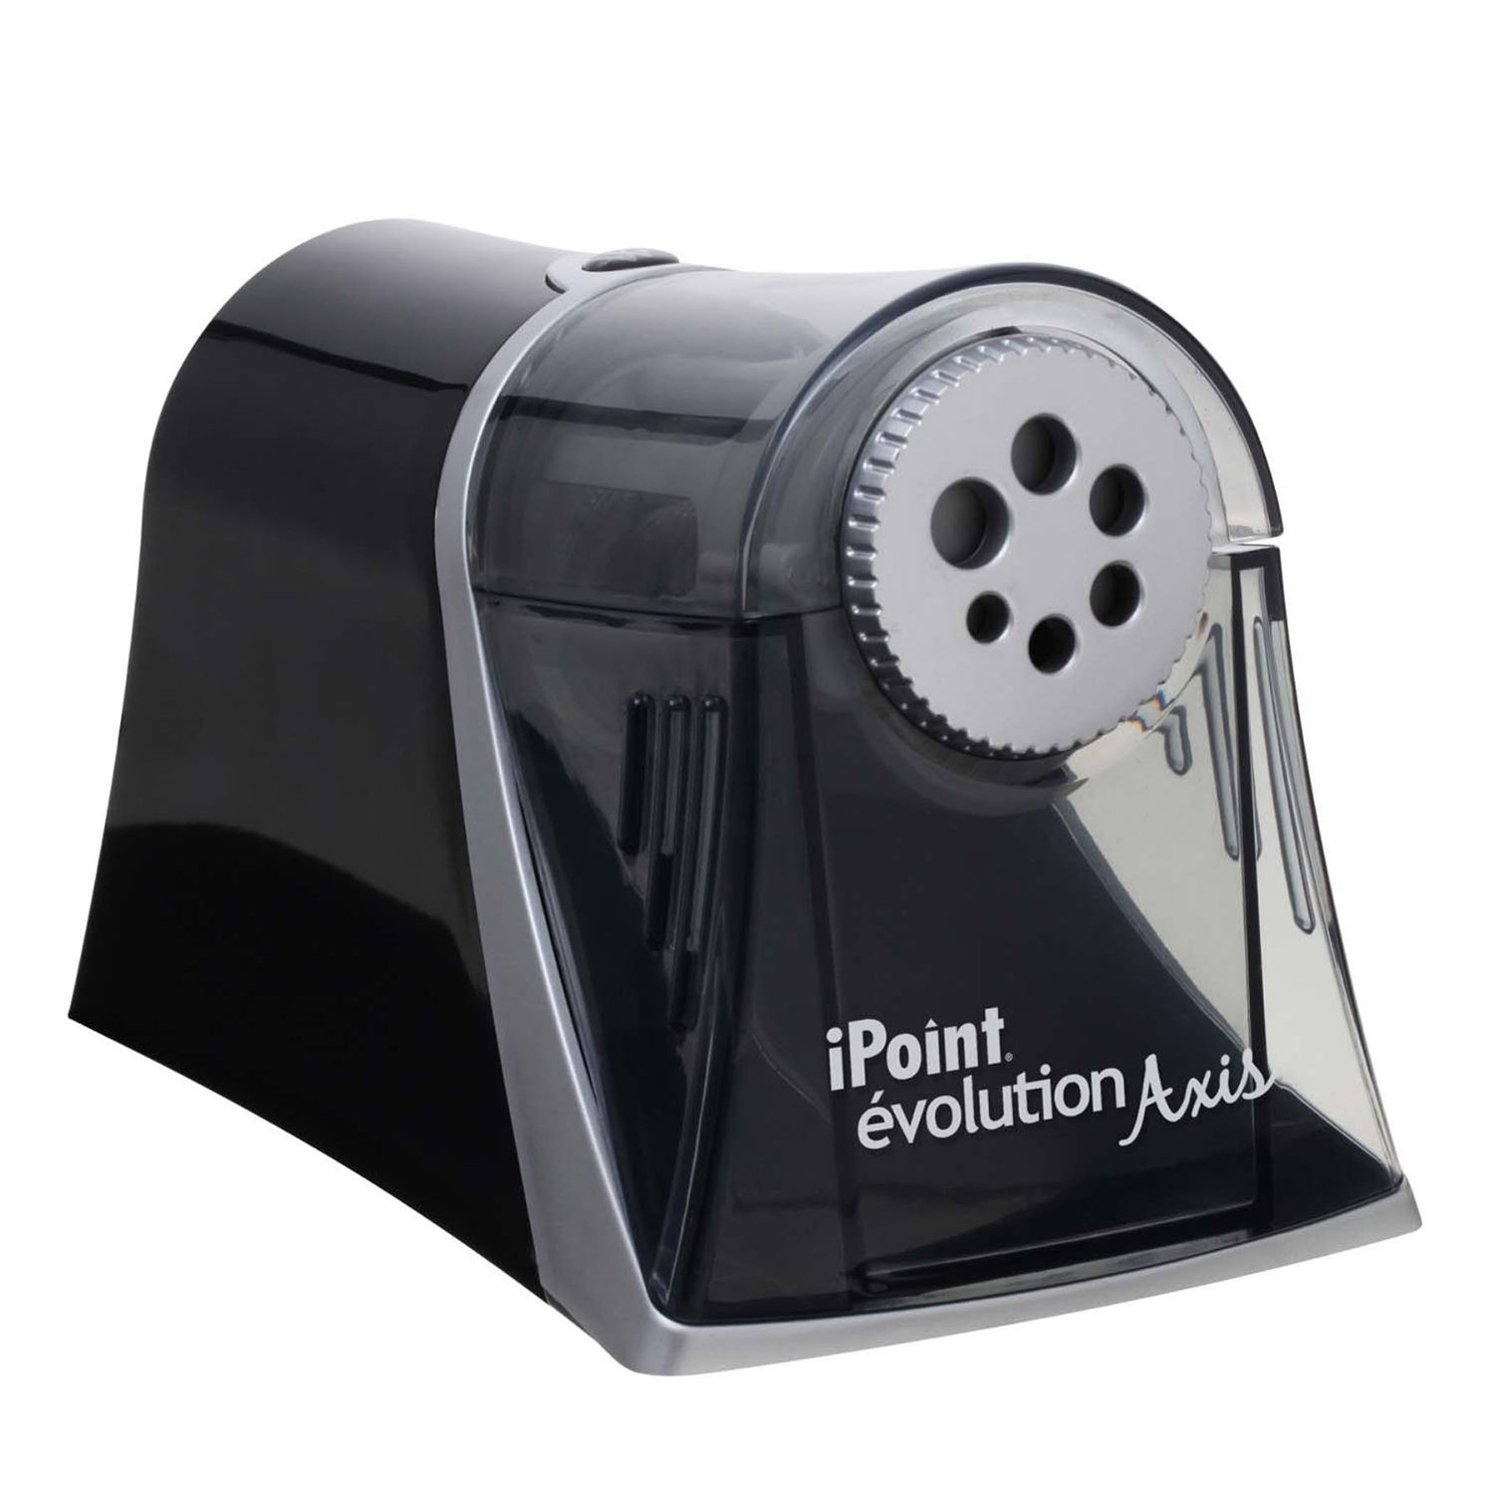 Westcott Axis iPoint Evolution Electric Heavy Duty Pencil Sharpener, Case of 6 (15509) by Westcott